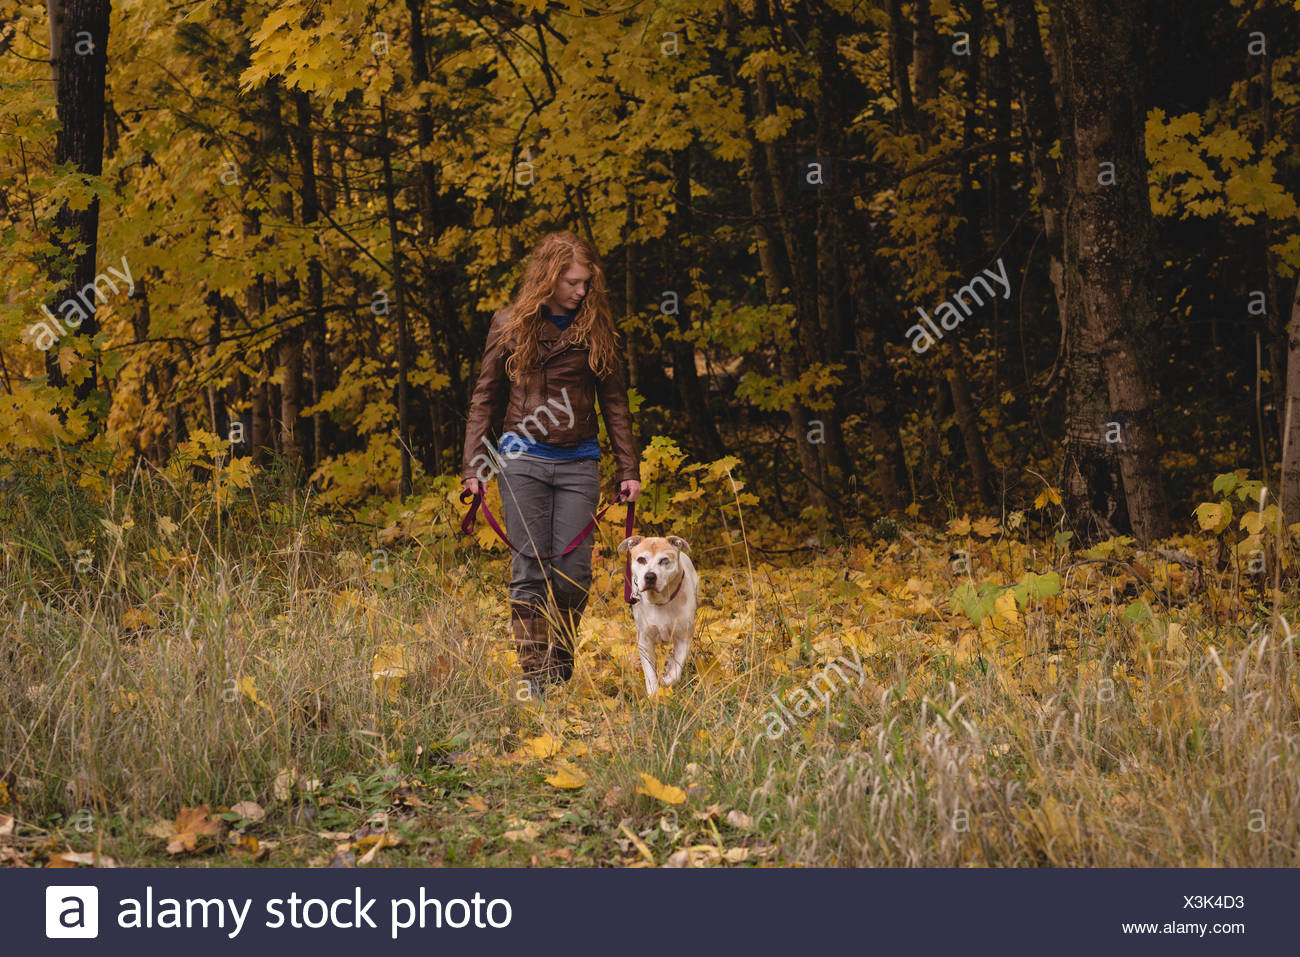 Woman walking in autumn forest with pet dog - Stock Image